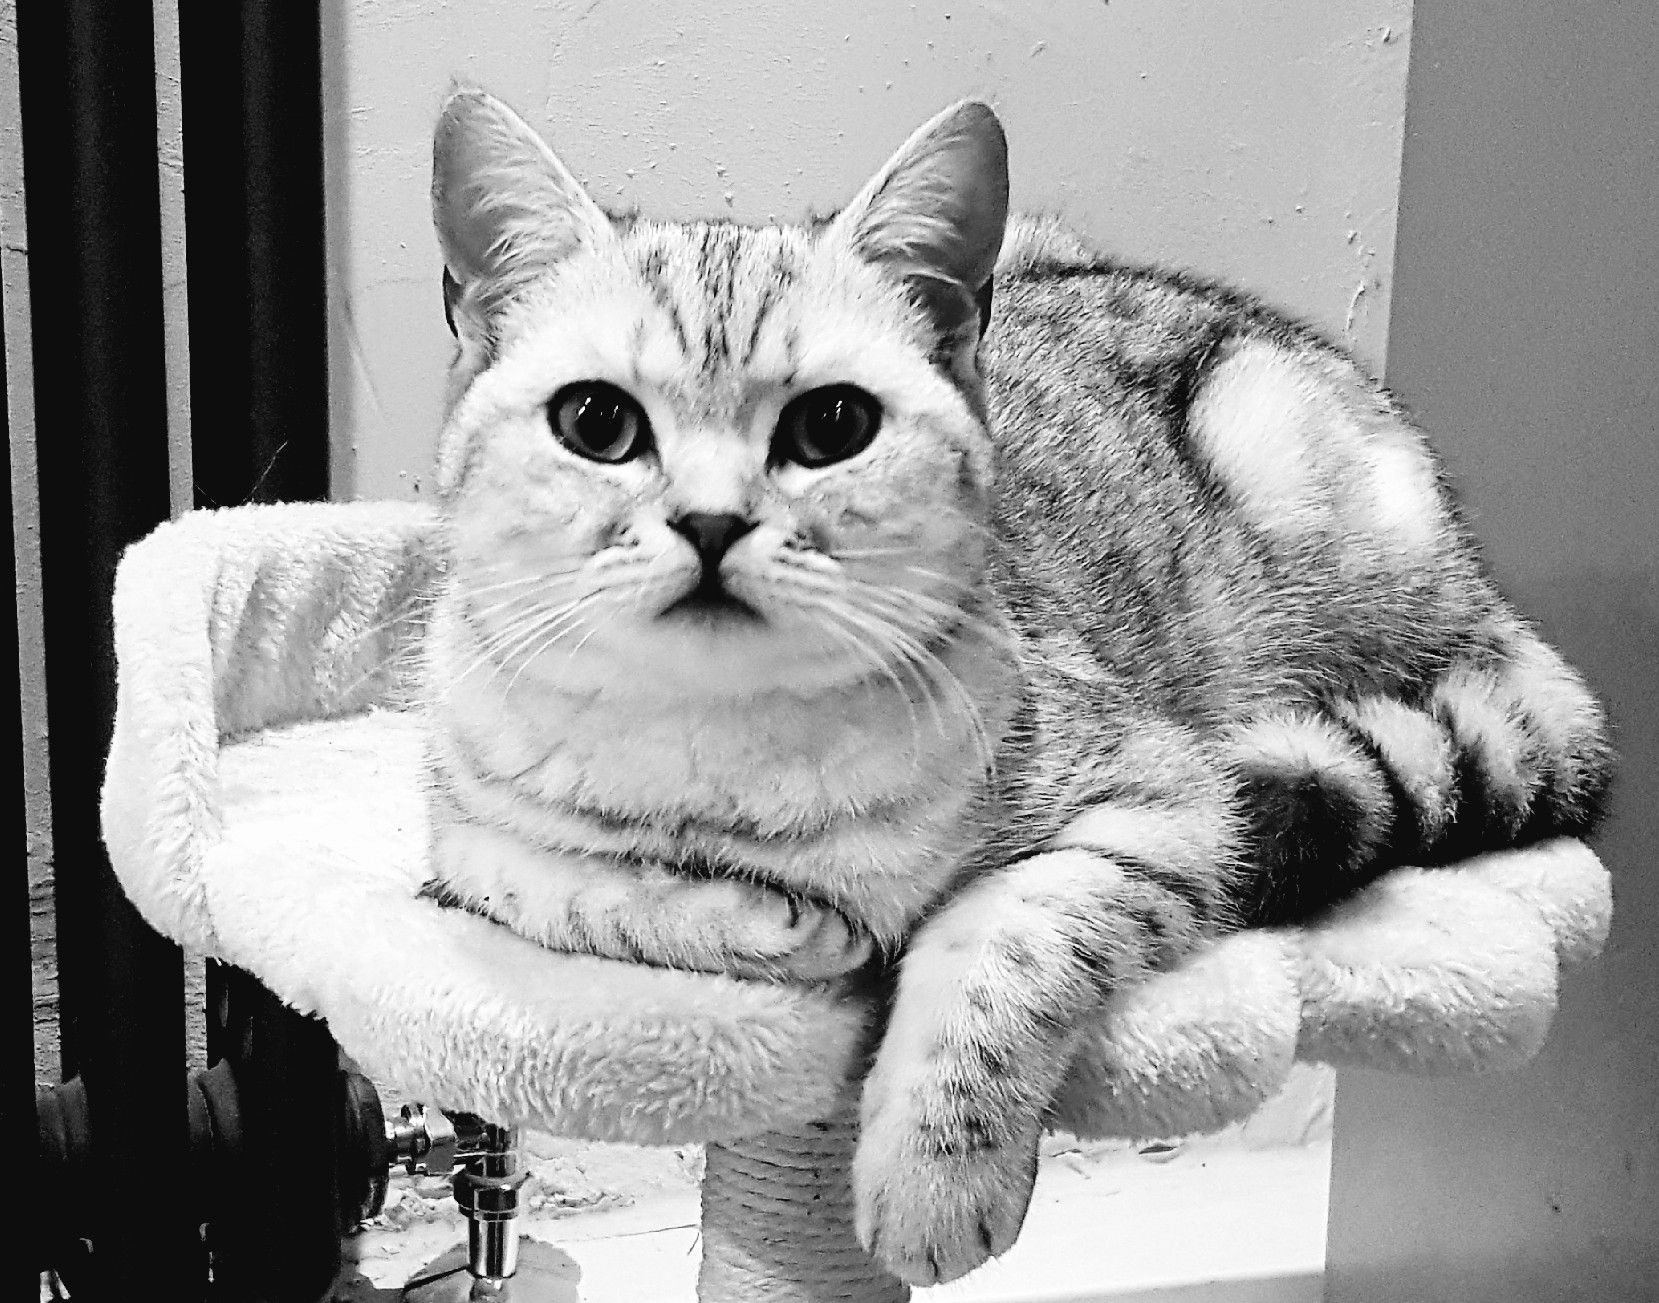 Pin by Chloe Allen on AWWW! British shorthair, Cats, Animals